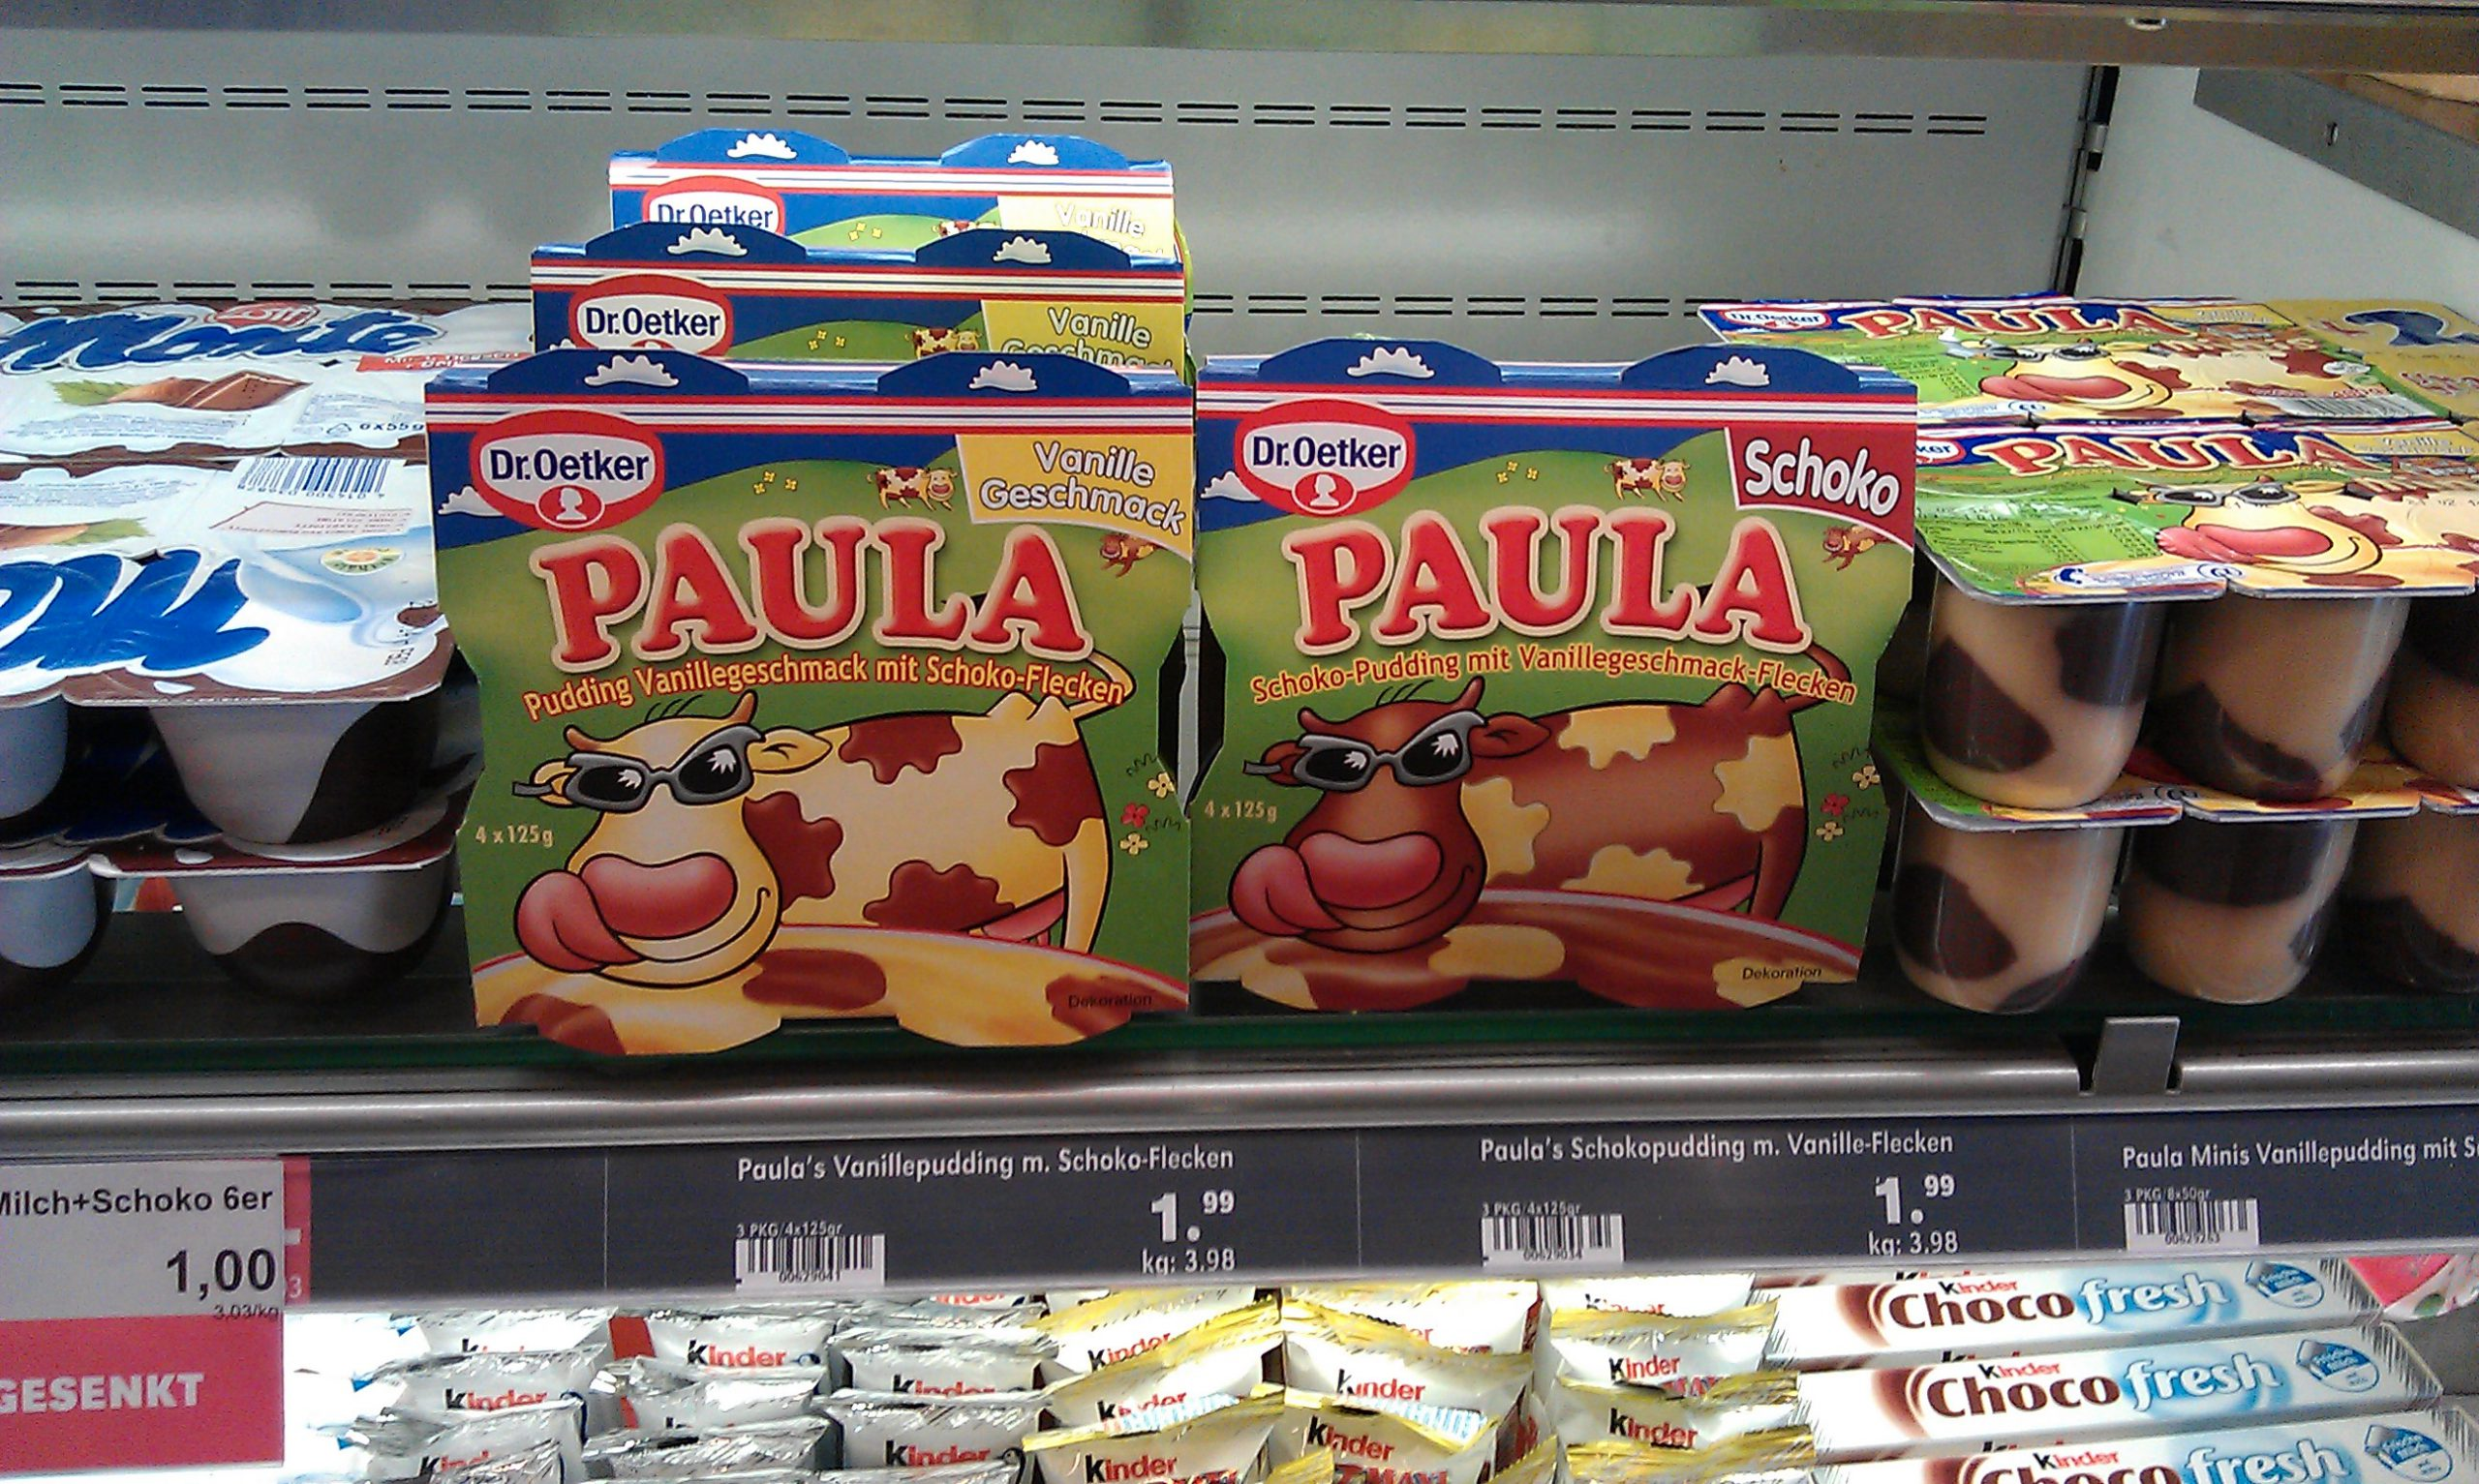 Paula as a yoghurt, always a bit cheesy!